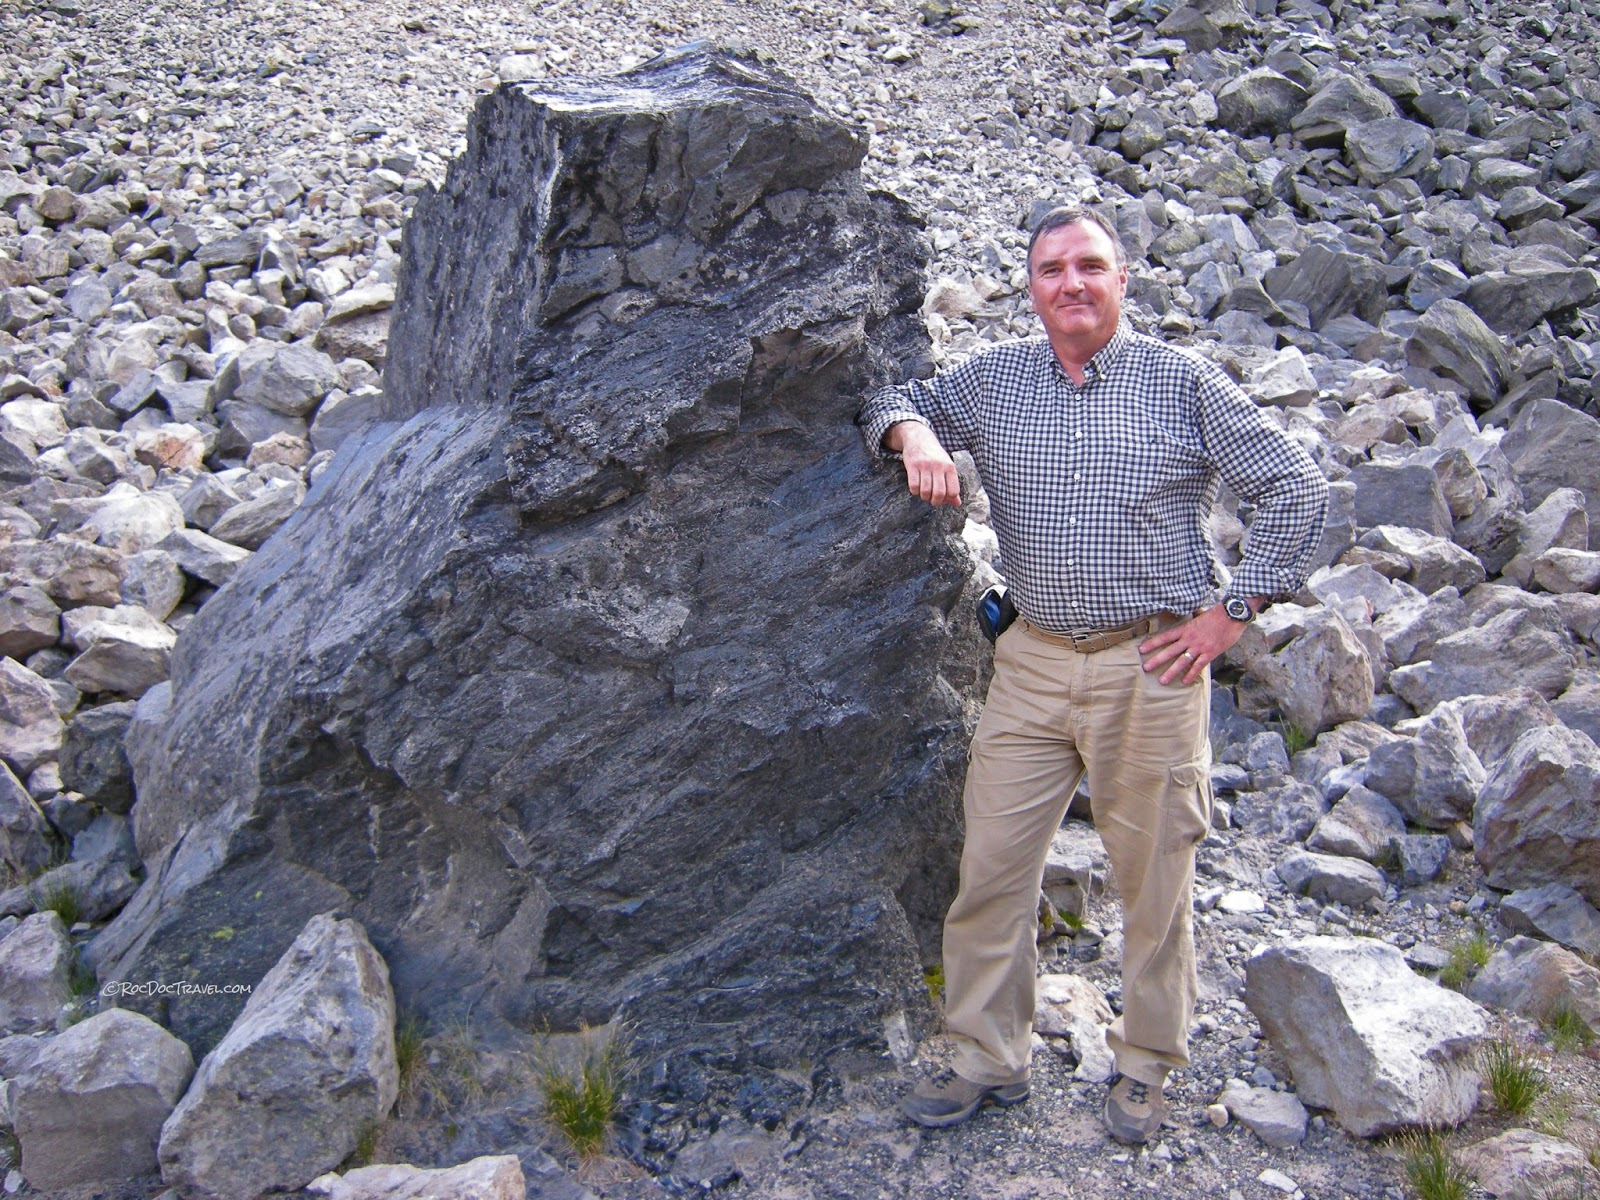 surprising geological places geology travel field trip copyright rocdoctravel.com